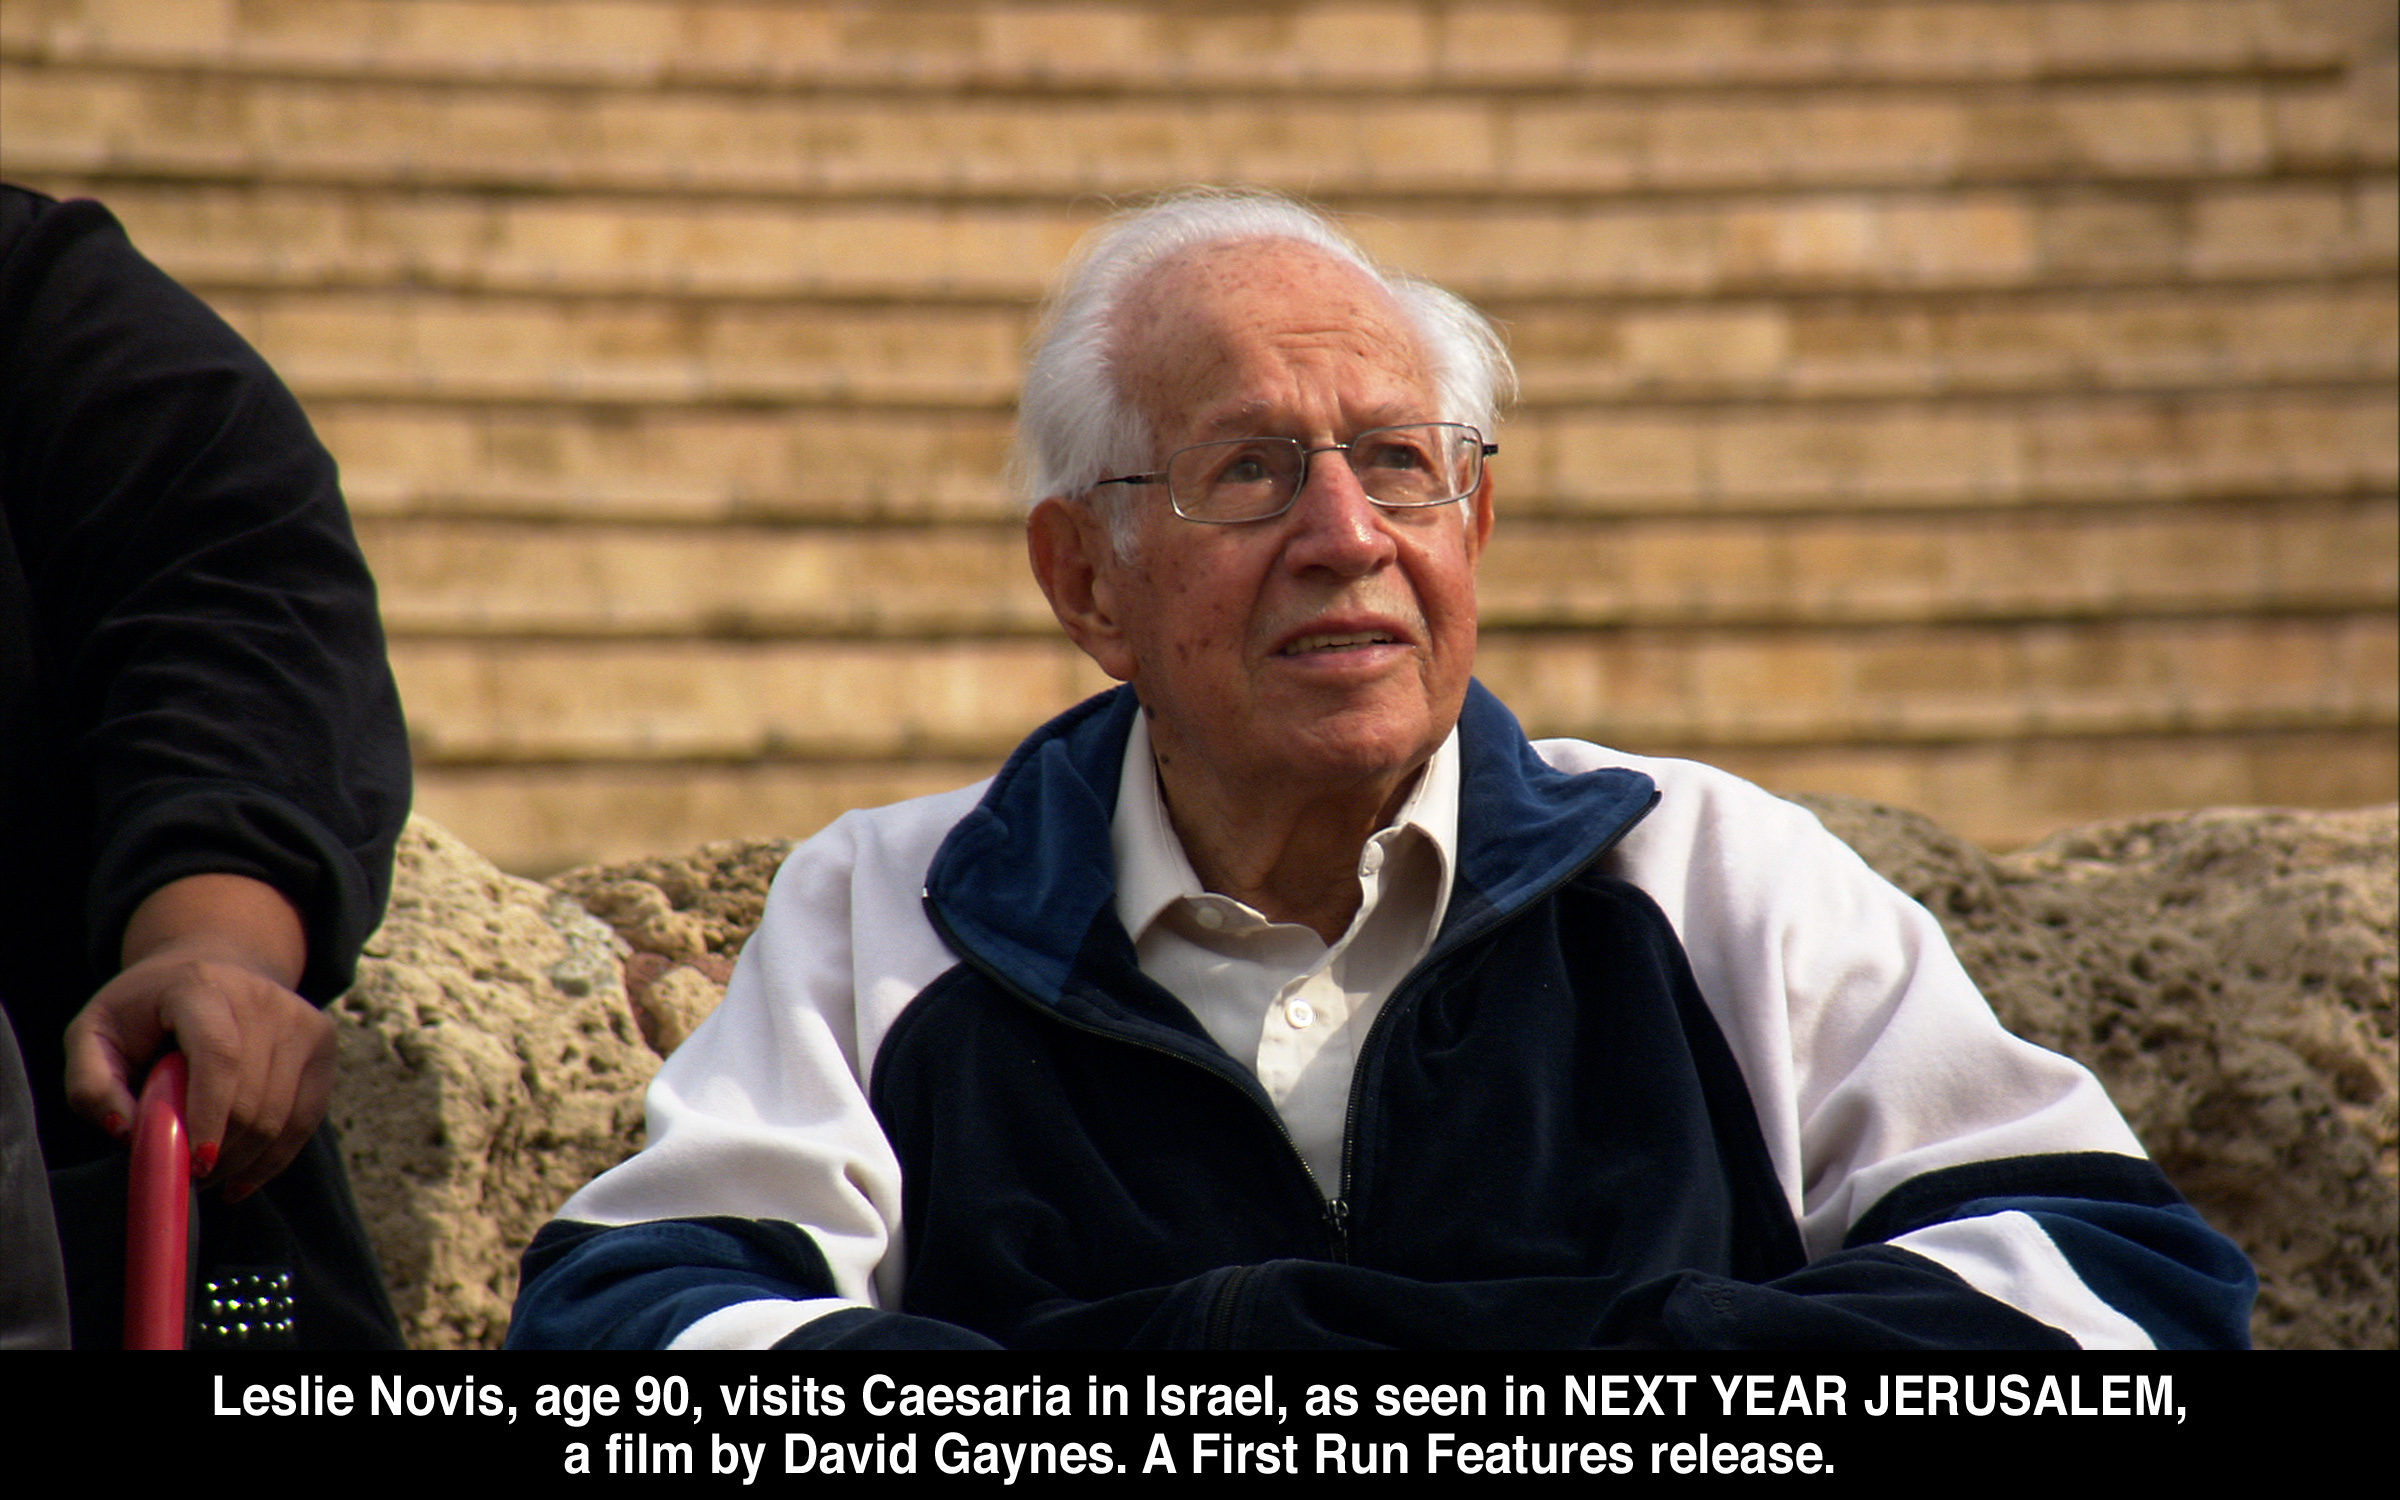 Leslie Novis (90) visits Caesaria in Israel, as seen in Next Year Jerusalem, a film by   David Gaynes.